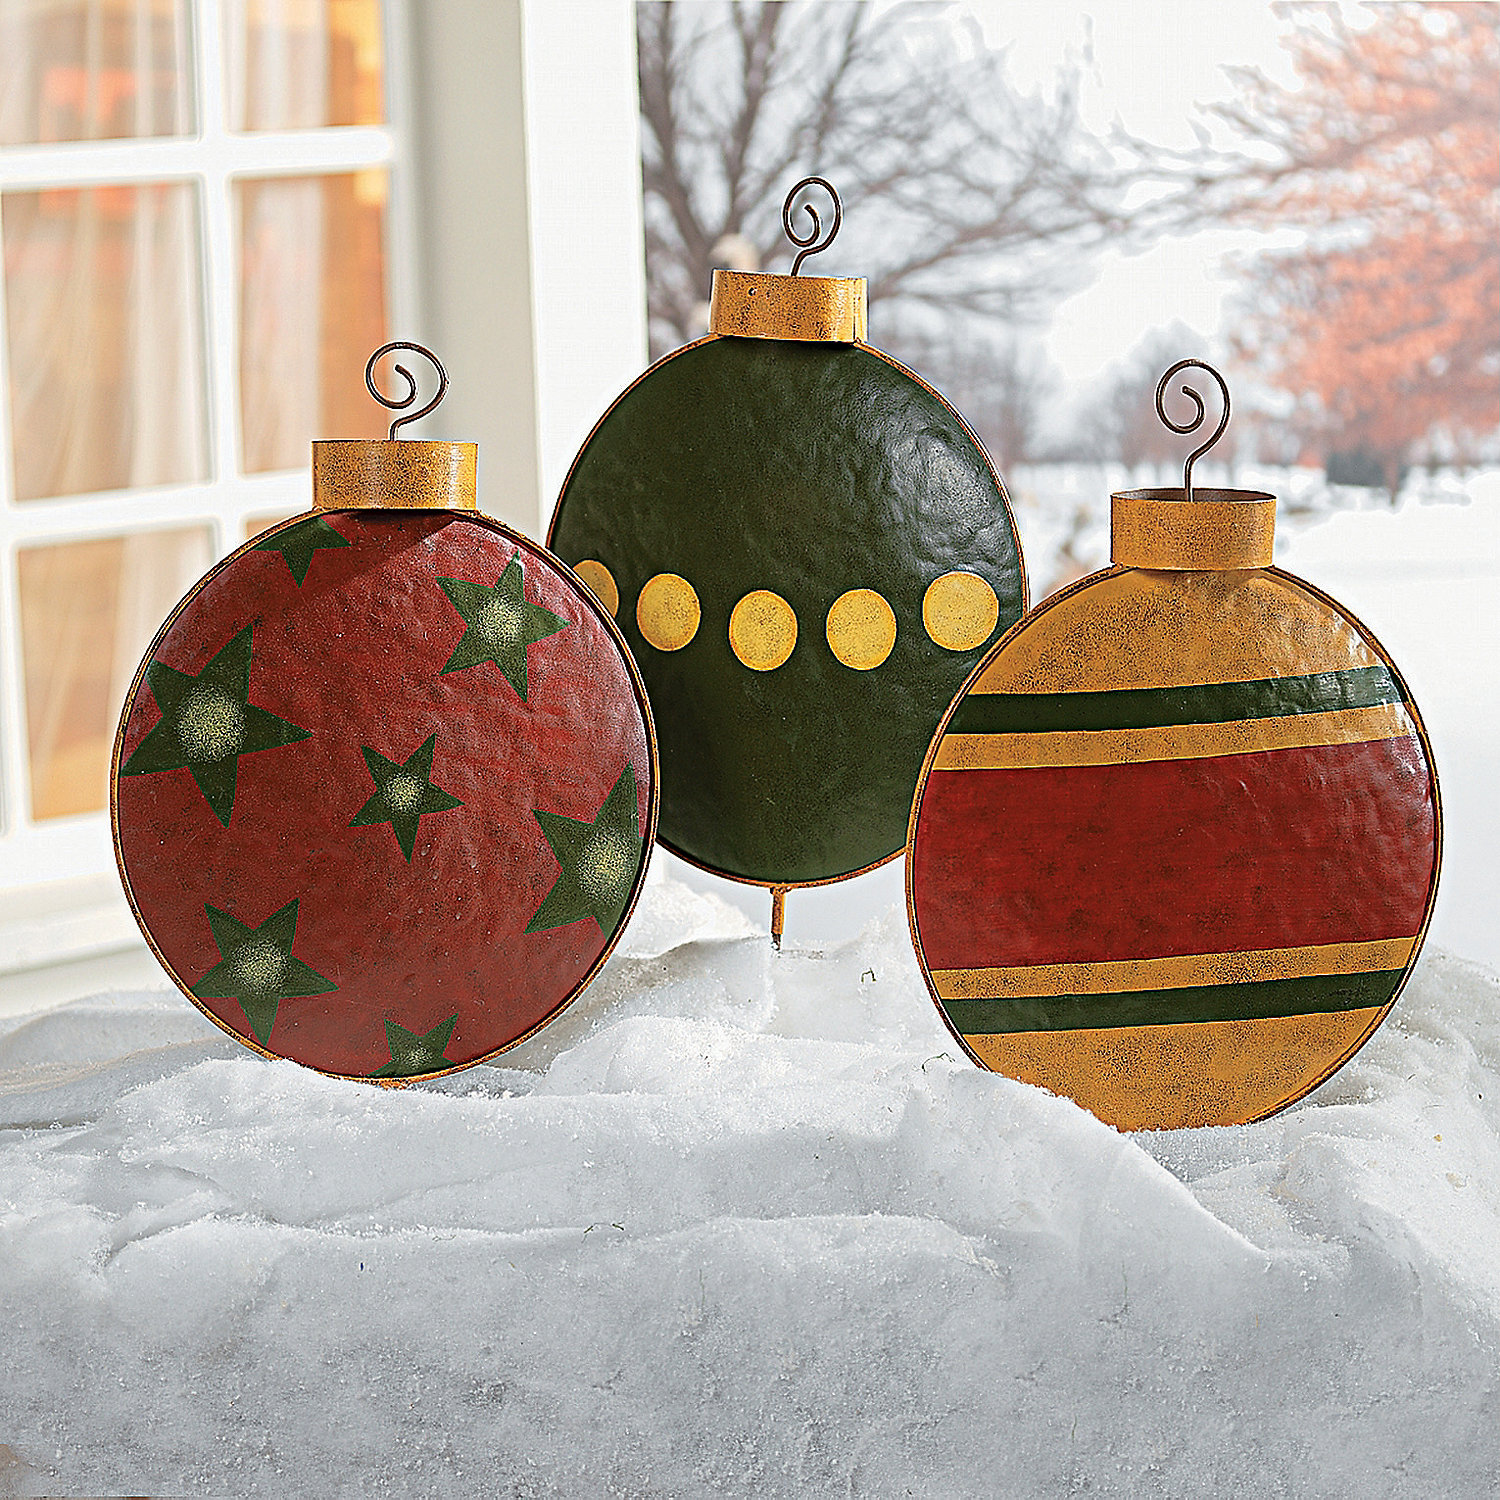 Home decor accents holiday decorations accessories for Christmas yard ornaments